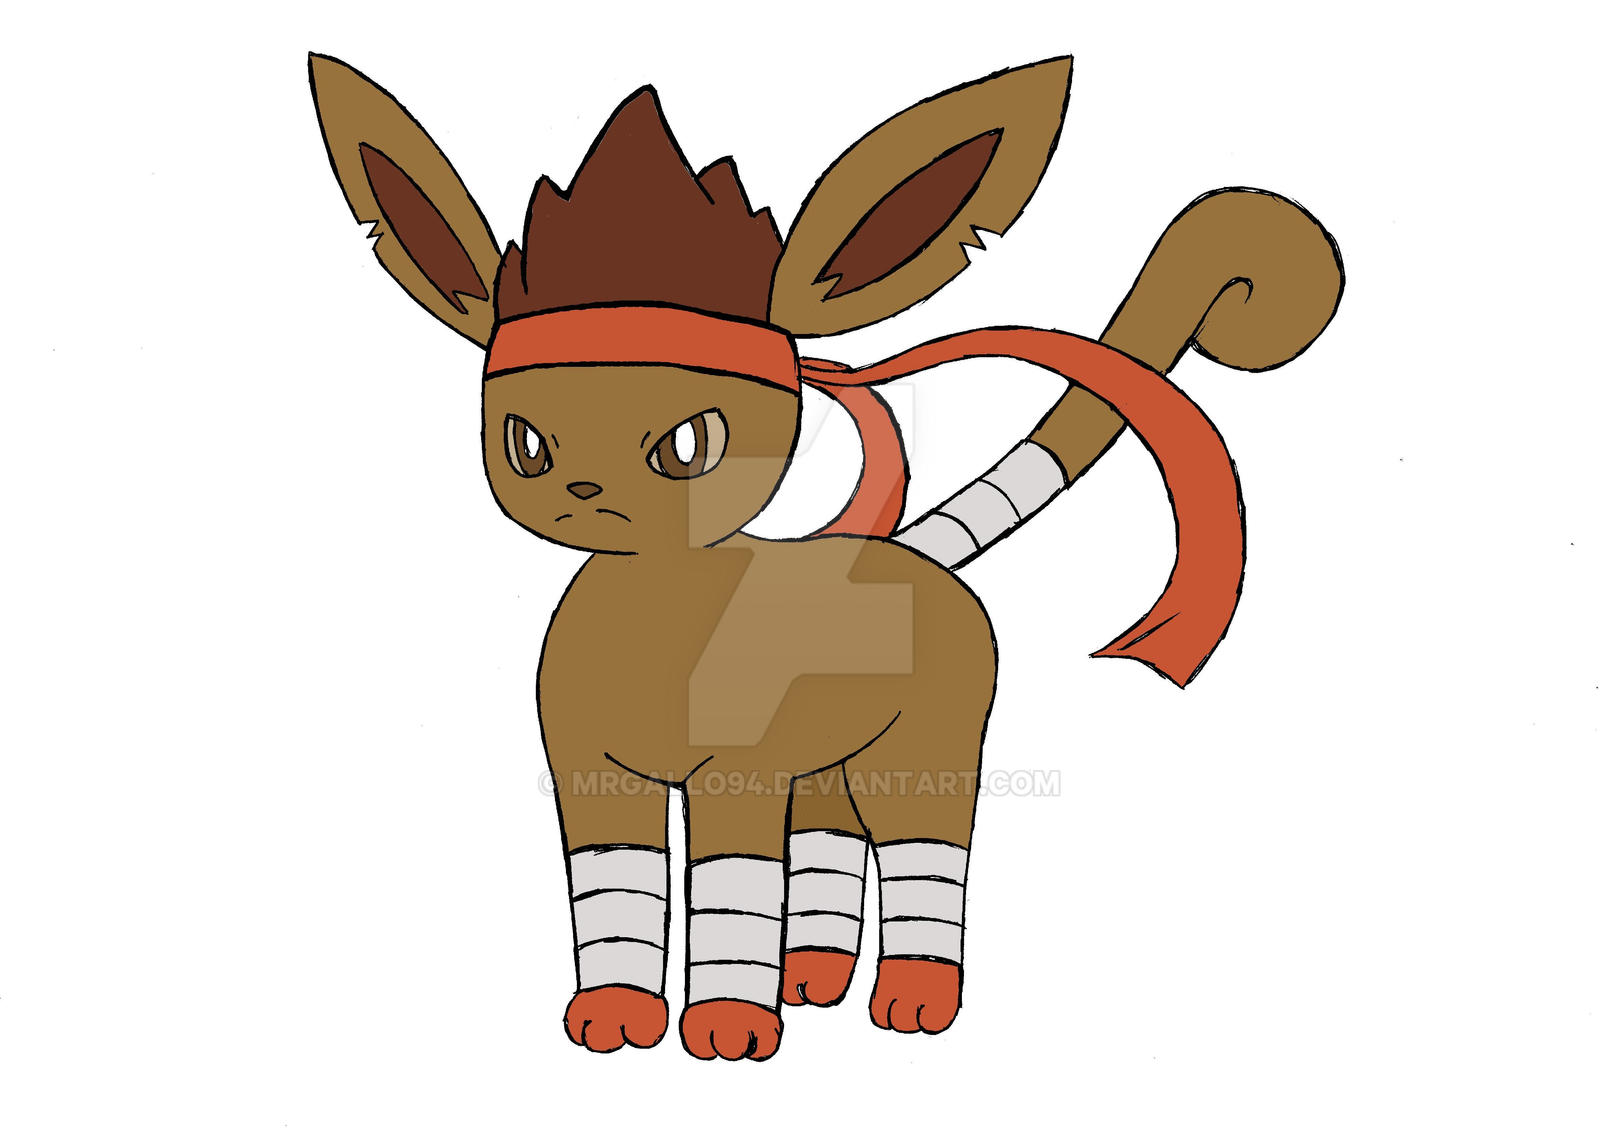 Pokemon Eevee Fighting Images | Pokemon Images